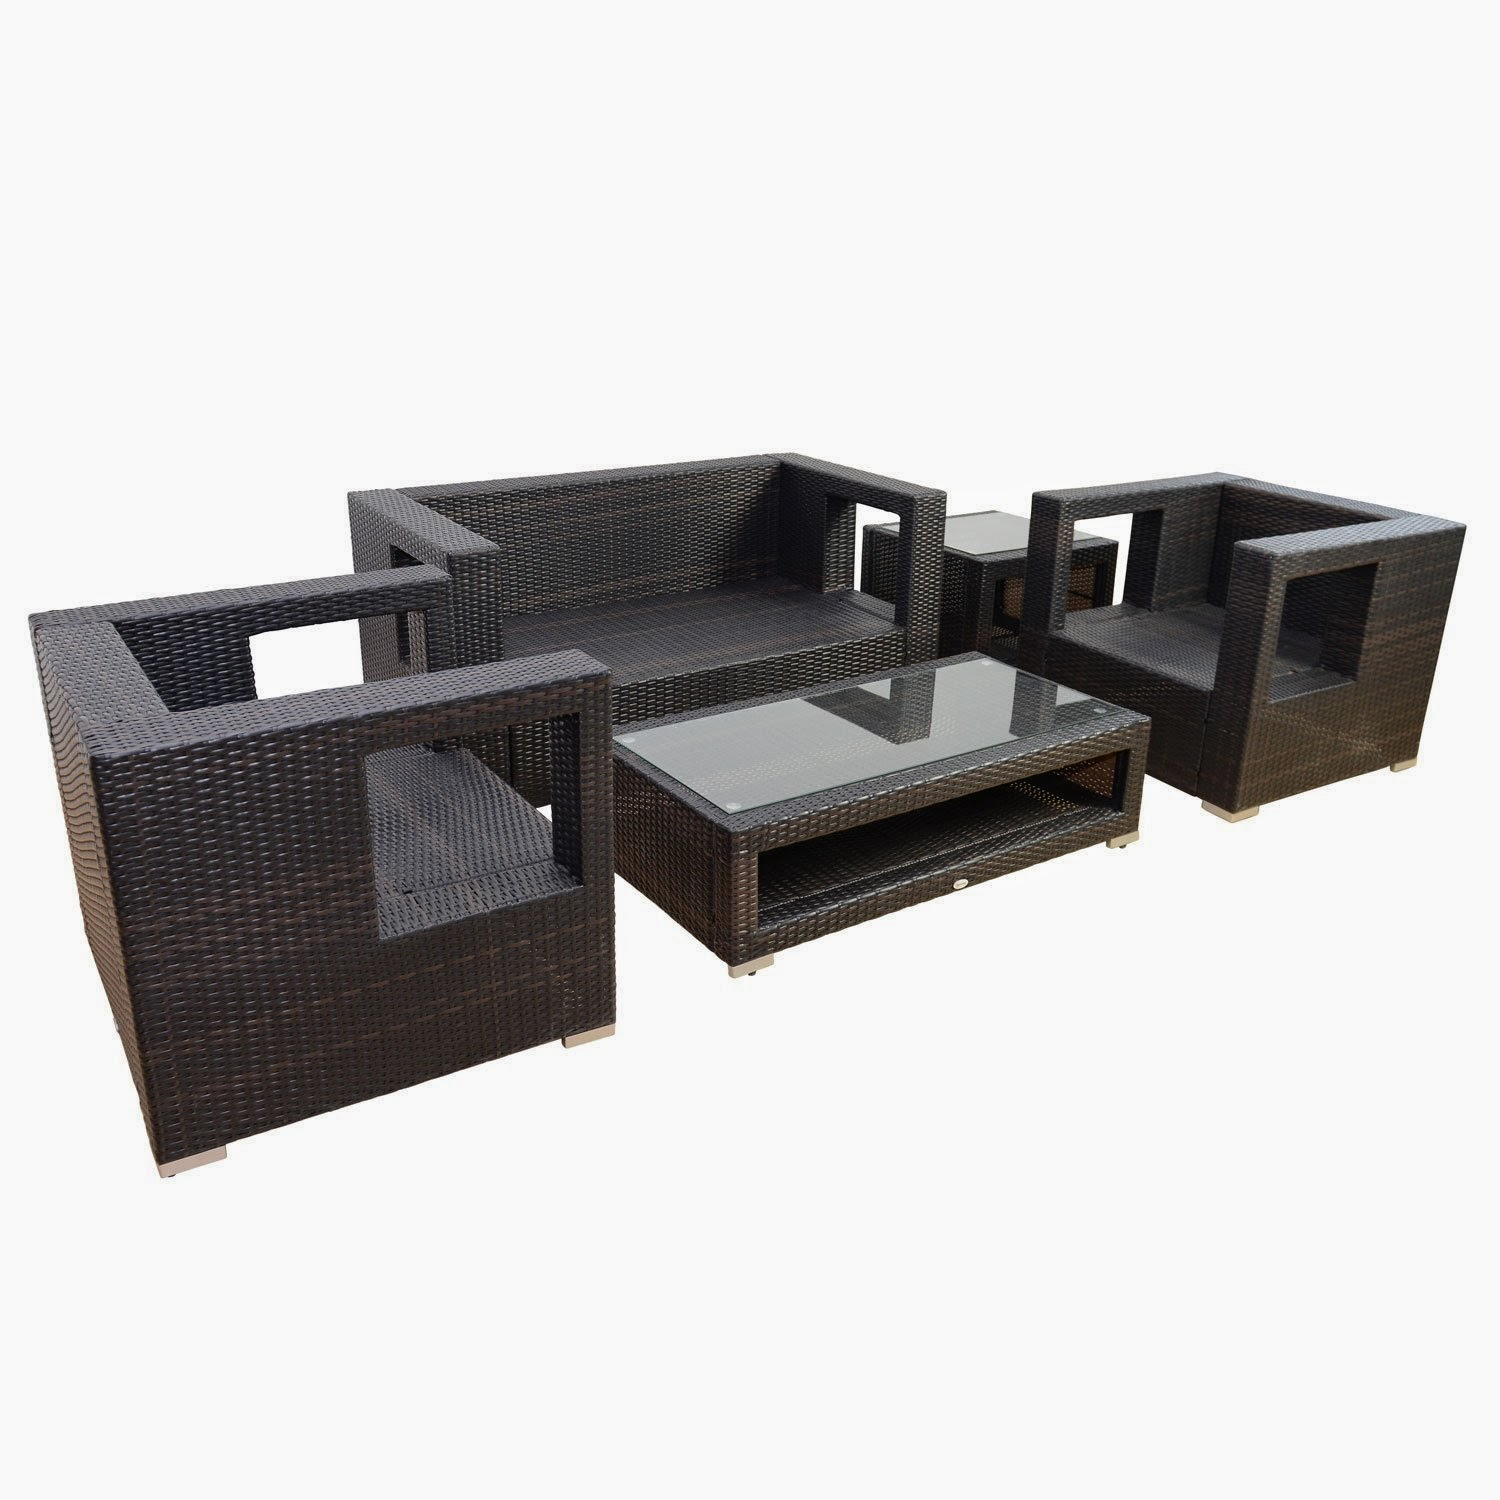 Outdoor Rattan Wicker Sofa Sectional Patio Furniture Set Vilasund Cover Bed With Chaise Lounge Dansbo Dark Grey Size Get Discount Outsunny 5pc Pe